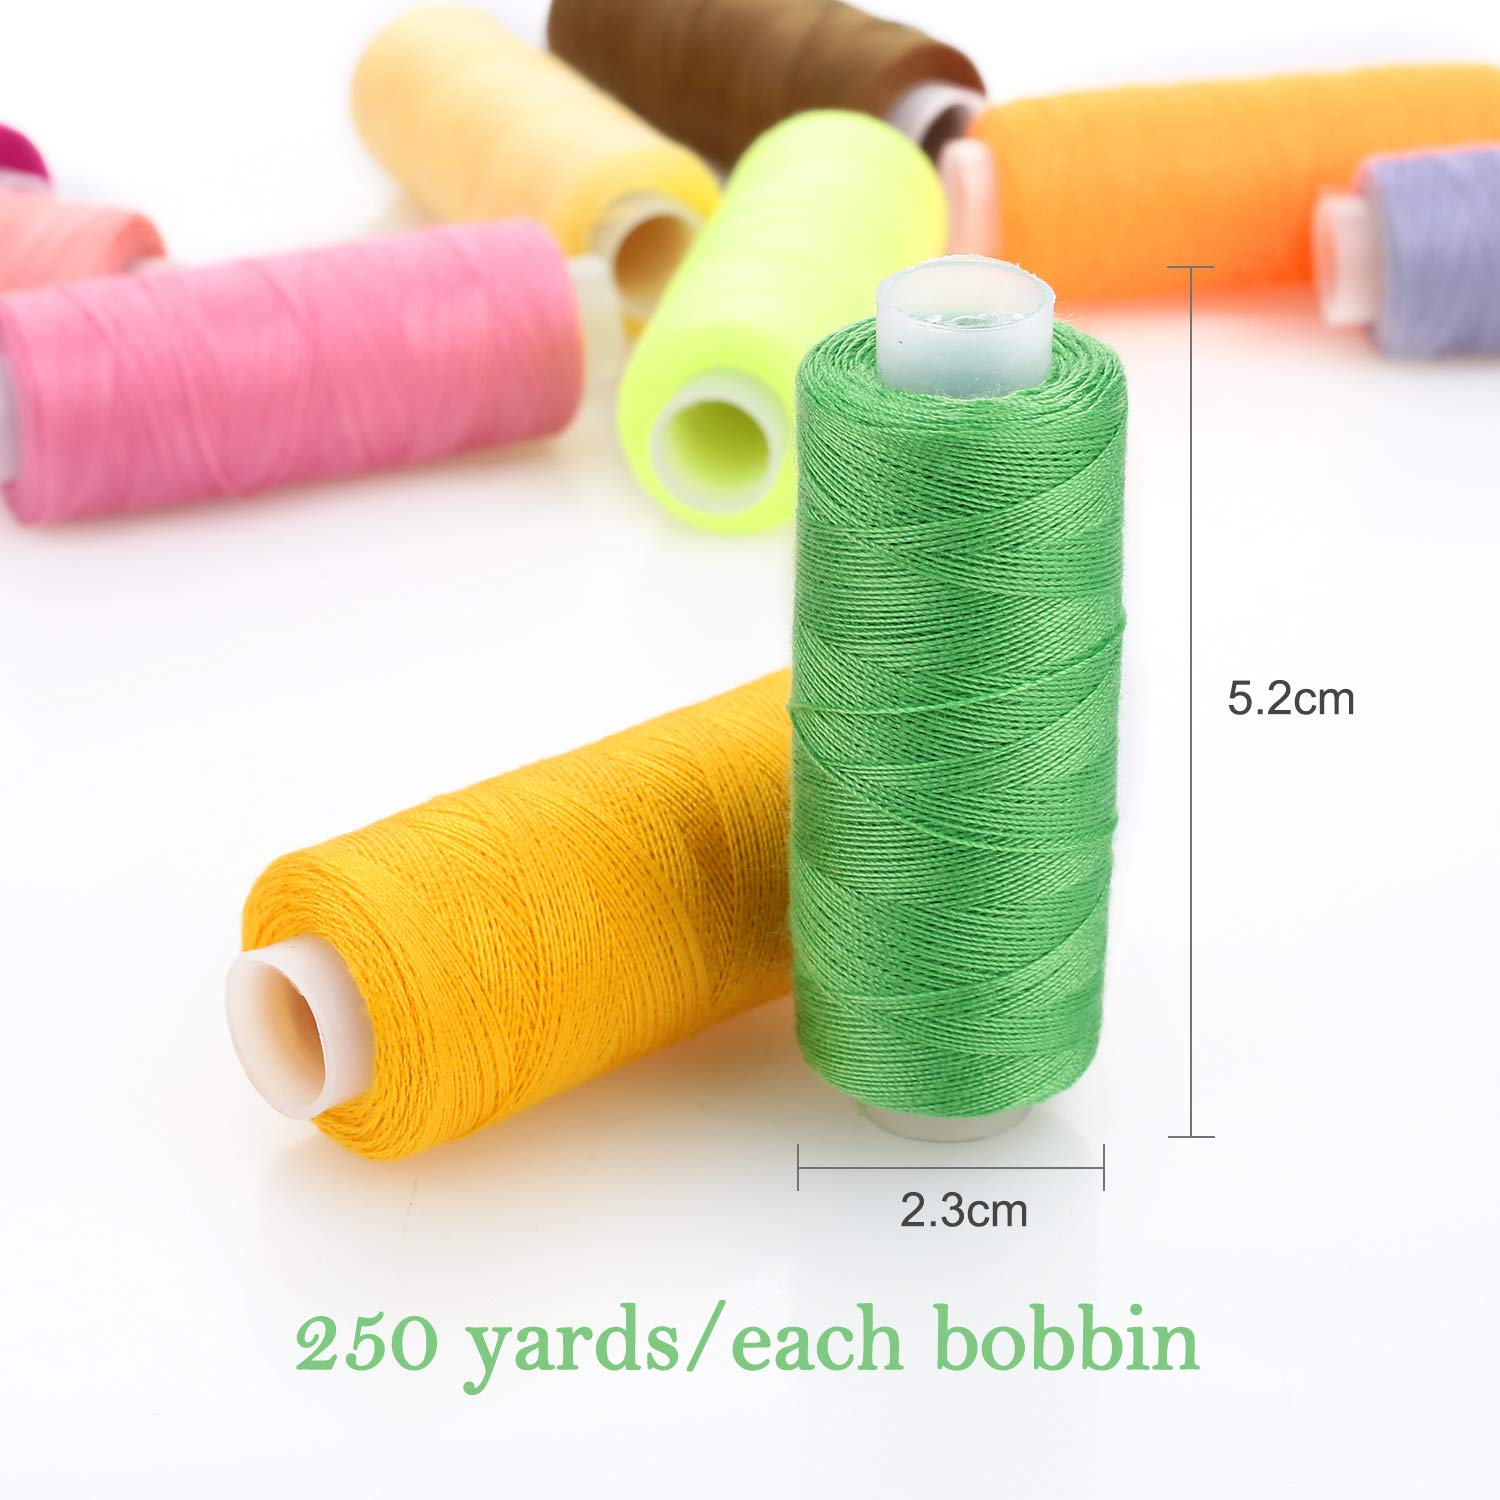 Sewing Thread 24 Colour 1000 Yards Each Spool SOLEDI Sewing Kit with 16 Sewing Needles and 2 Needle Threader 42 Pcs Suitable for Sewing by Hand and Sewing by Machine